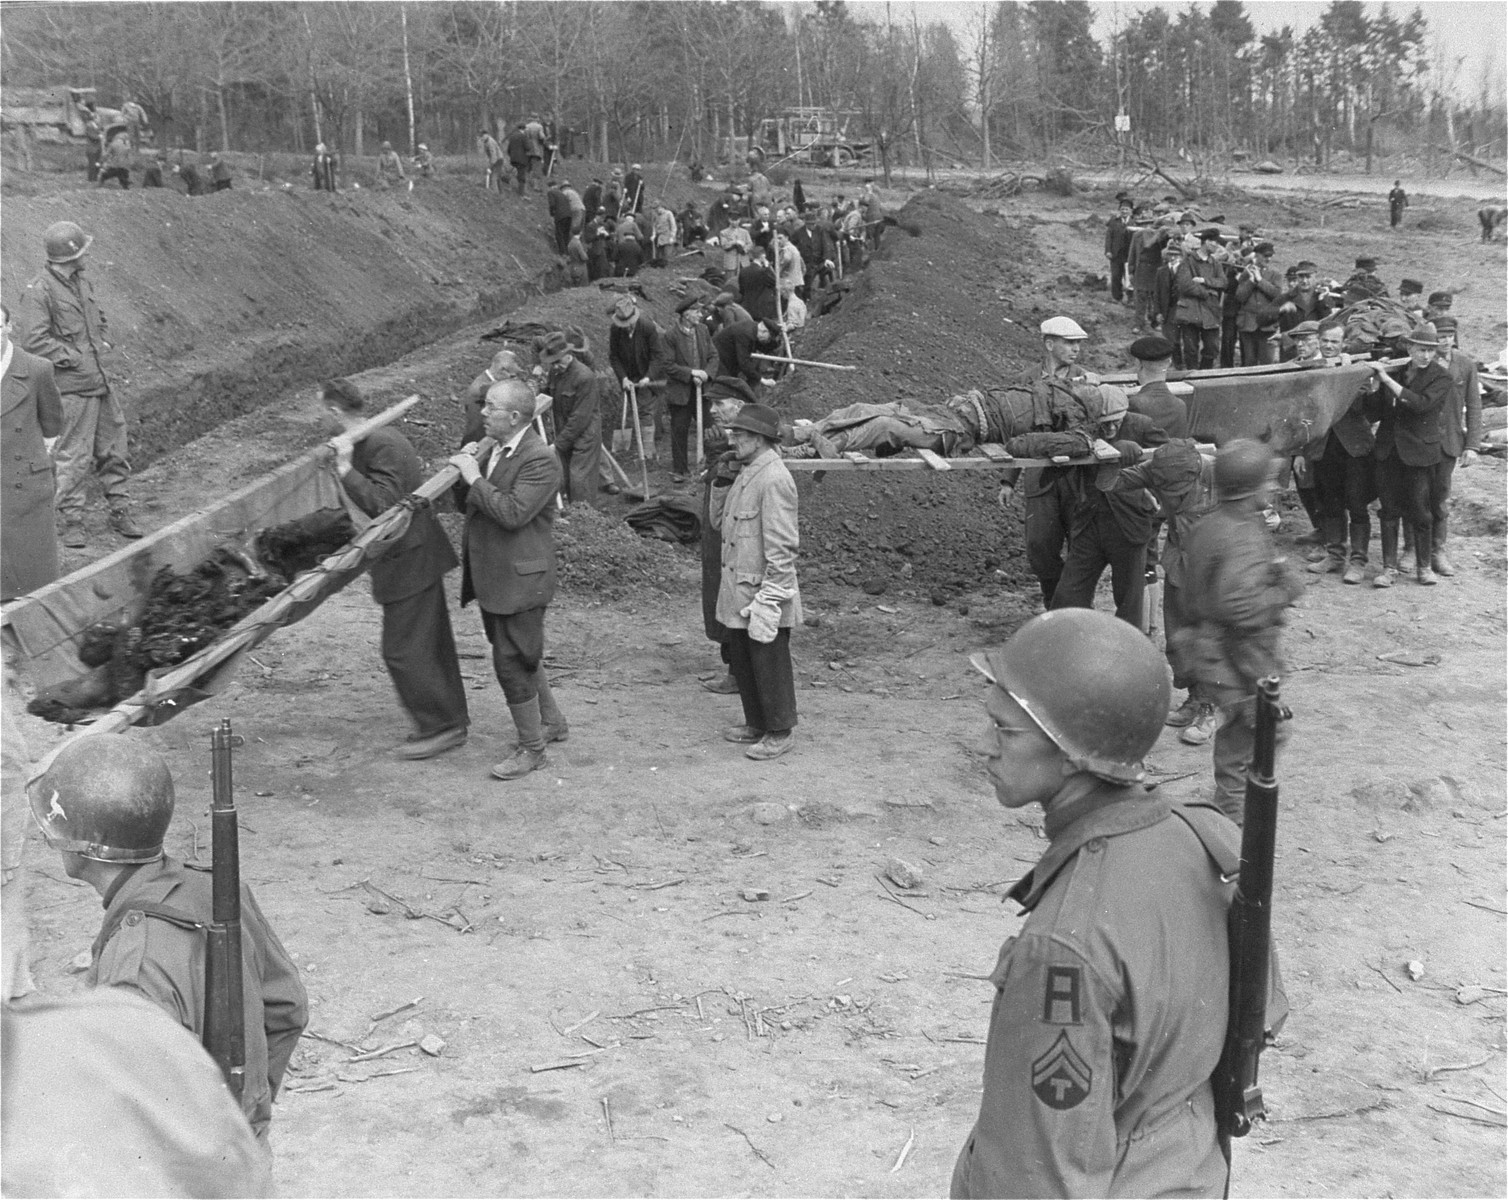 American troops look on as German civilians carry corpses from the grounds of the Nordhausen concentration camp to mass graves for burial.